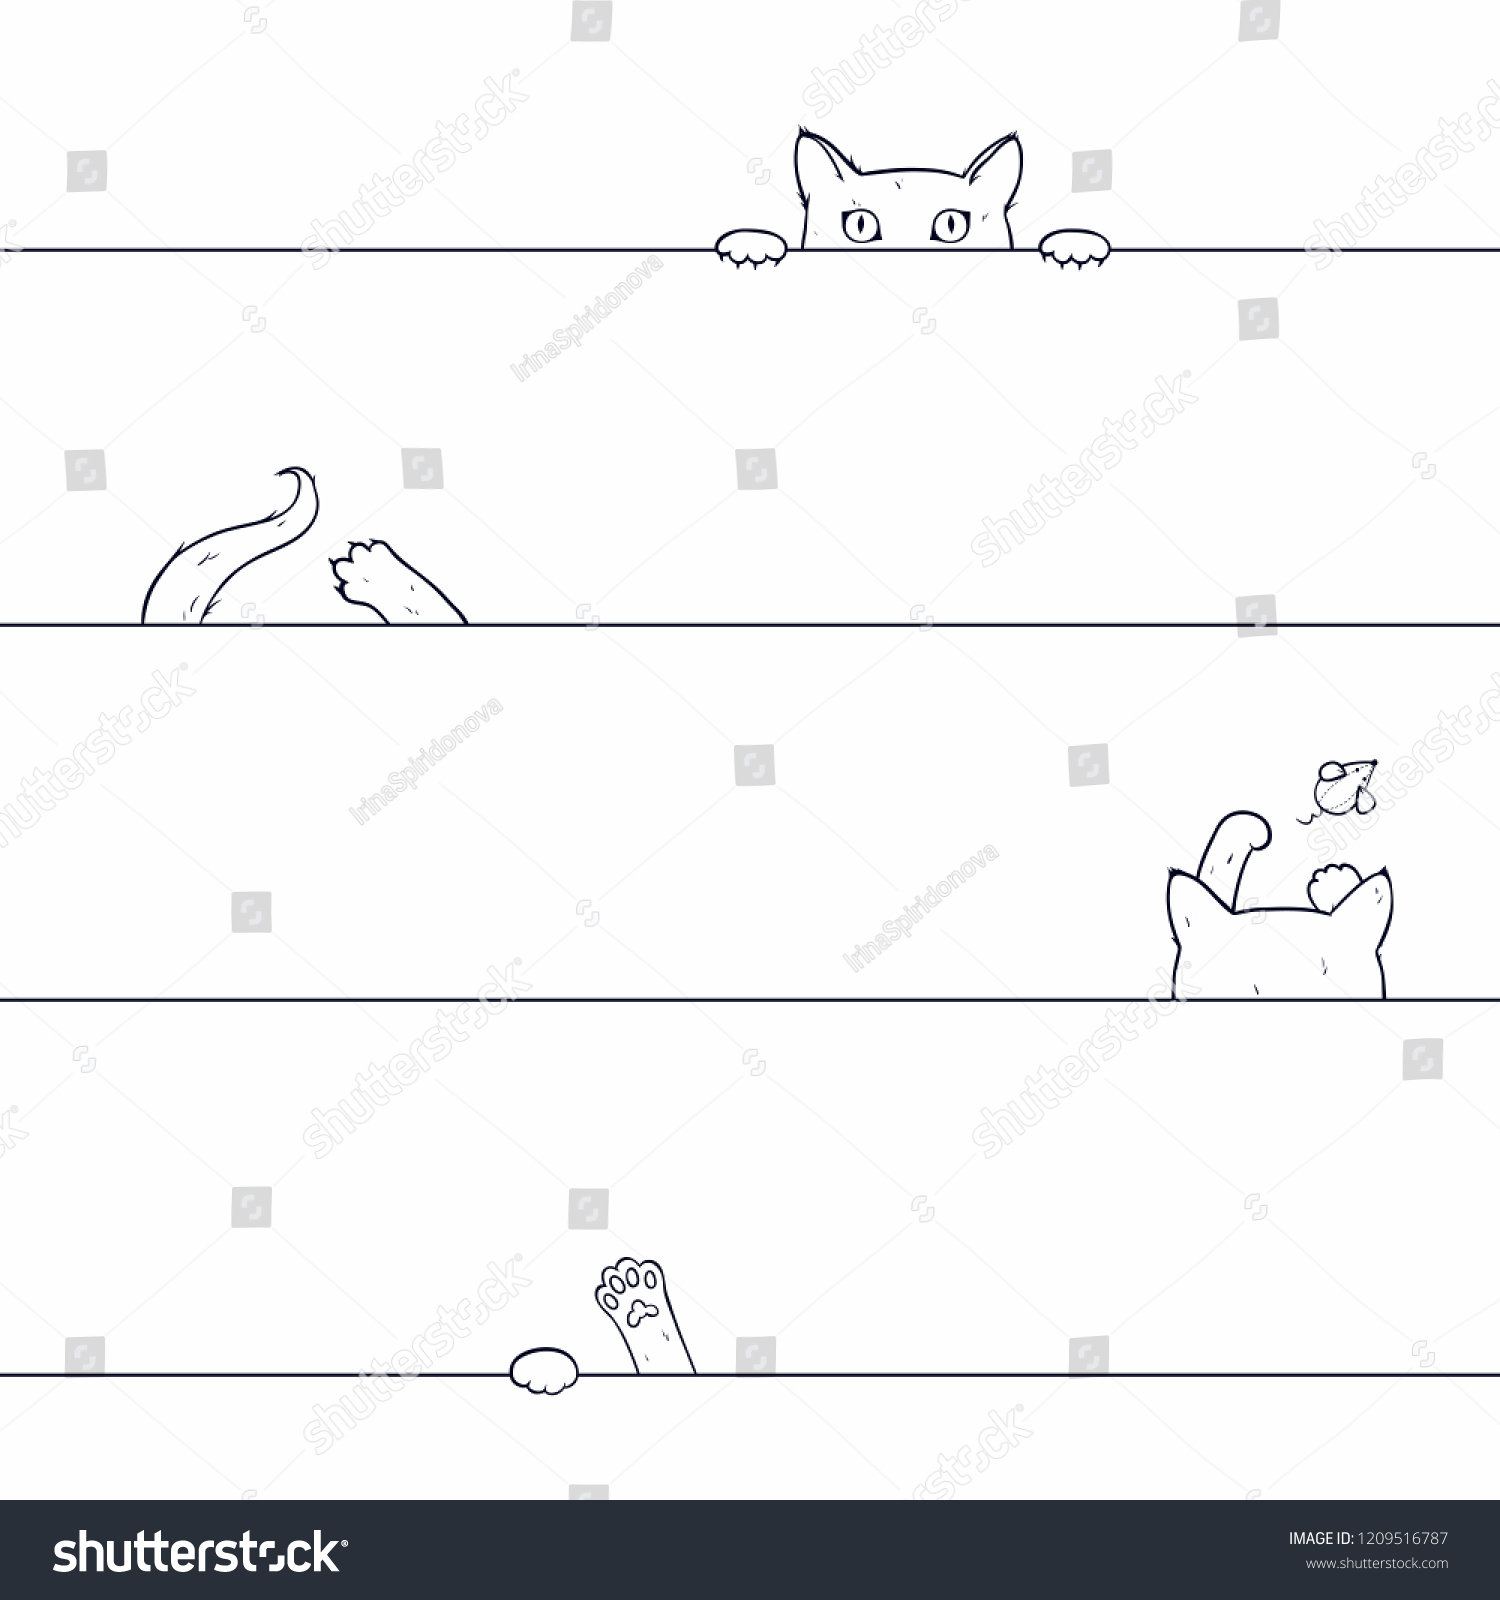 hight resolution of vector seamless pattern with playing cat drawn by hand on a white background cat catches